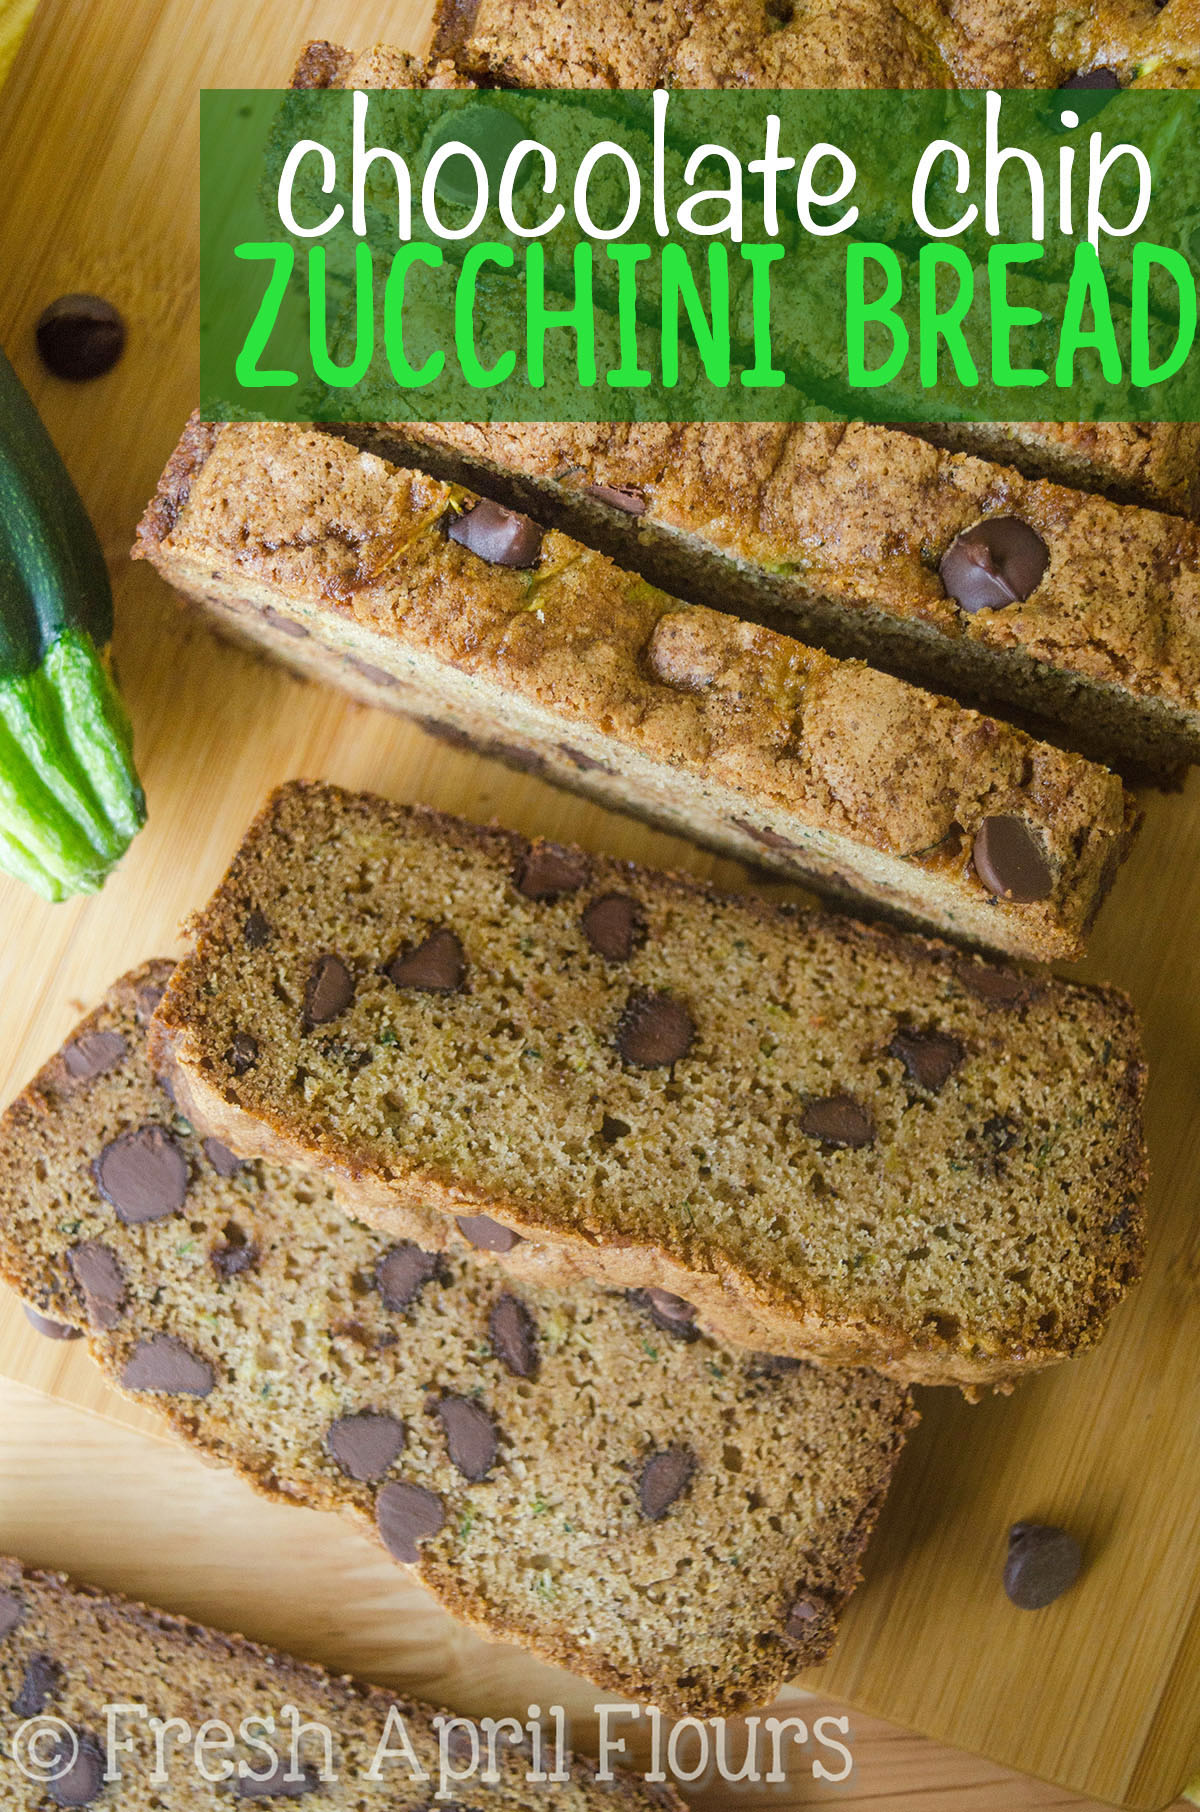 Chocolate Chip Zucchini Bread: Perfectly spiced, perfectly sweetened, and a great way to use up your summer zucchini (or frozen zucchini any time of the year)! Recipe makes one loaf or 12 muffins.